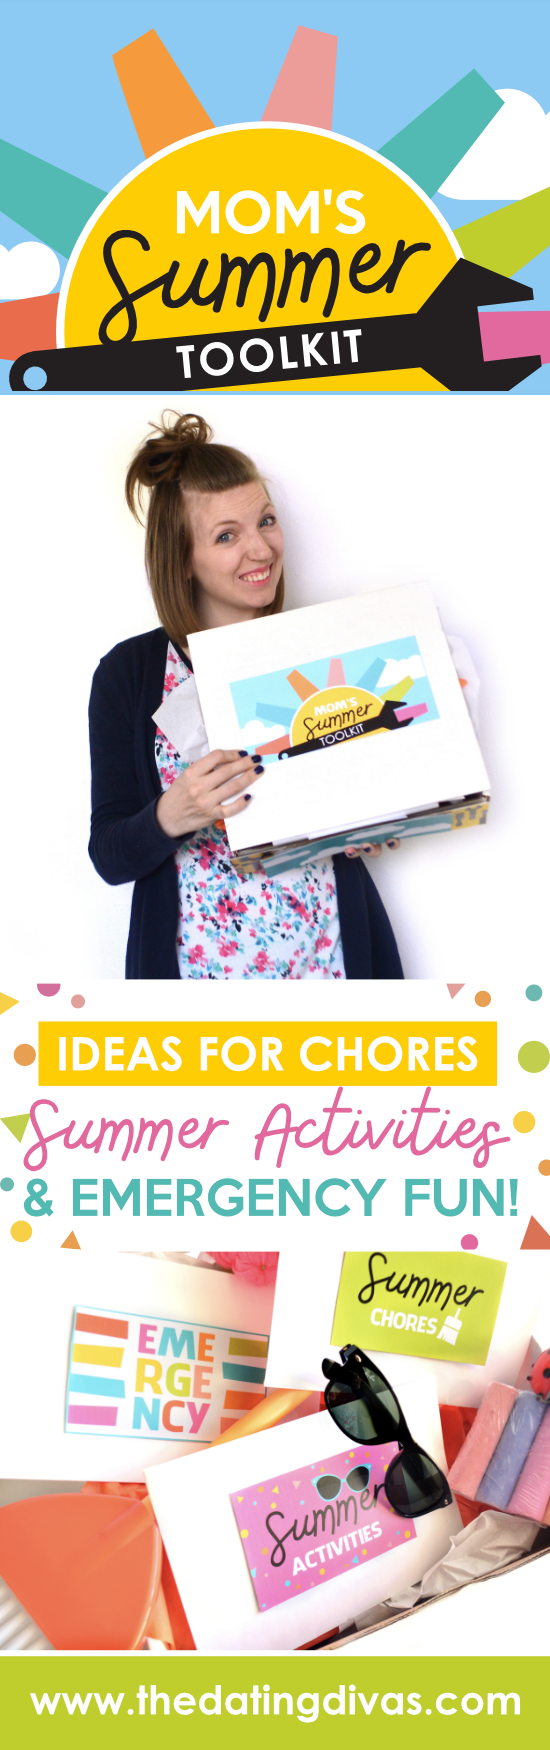 This totally solves our summer boredom problem! Plus thedatingdivas.com made it so cute! #FunActivitiesforKids #ChoresForKids #MomsSummerToolkit #TheDatingDivas